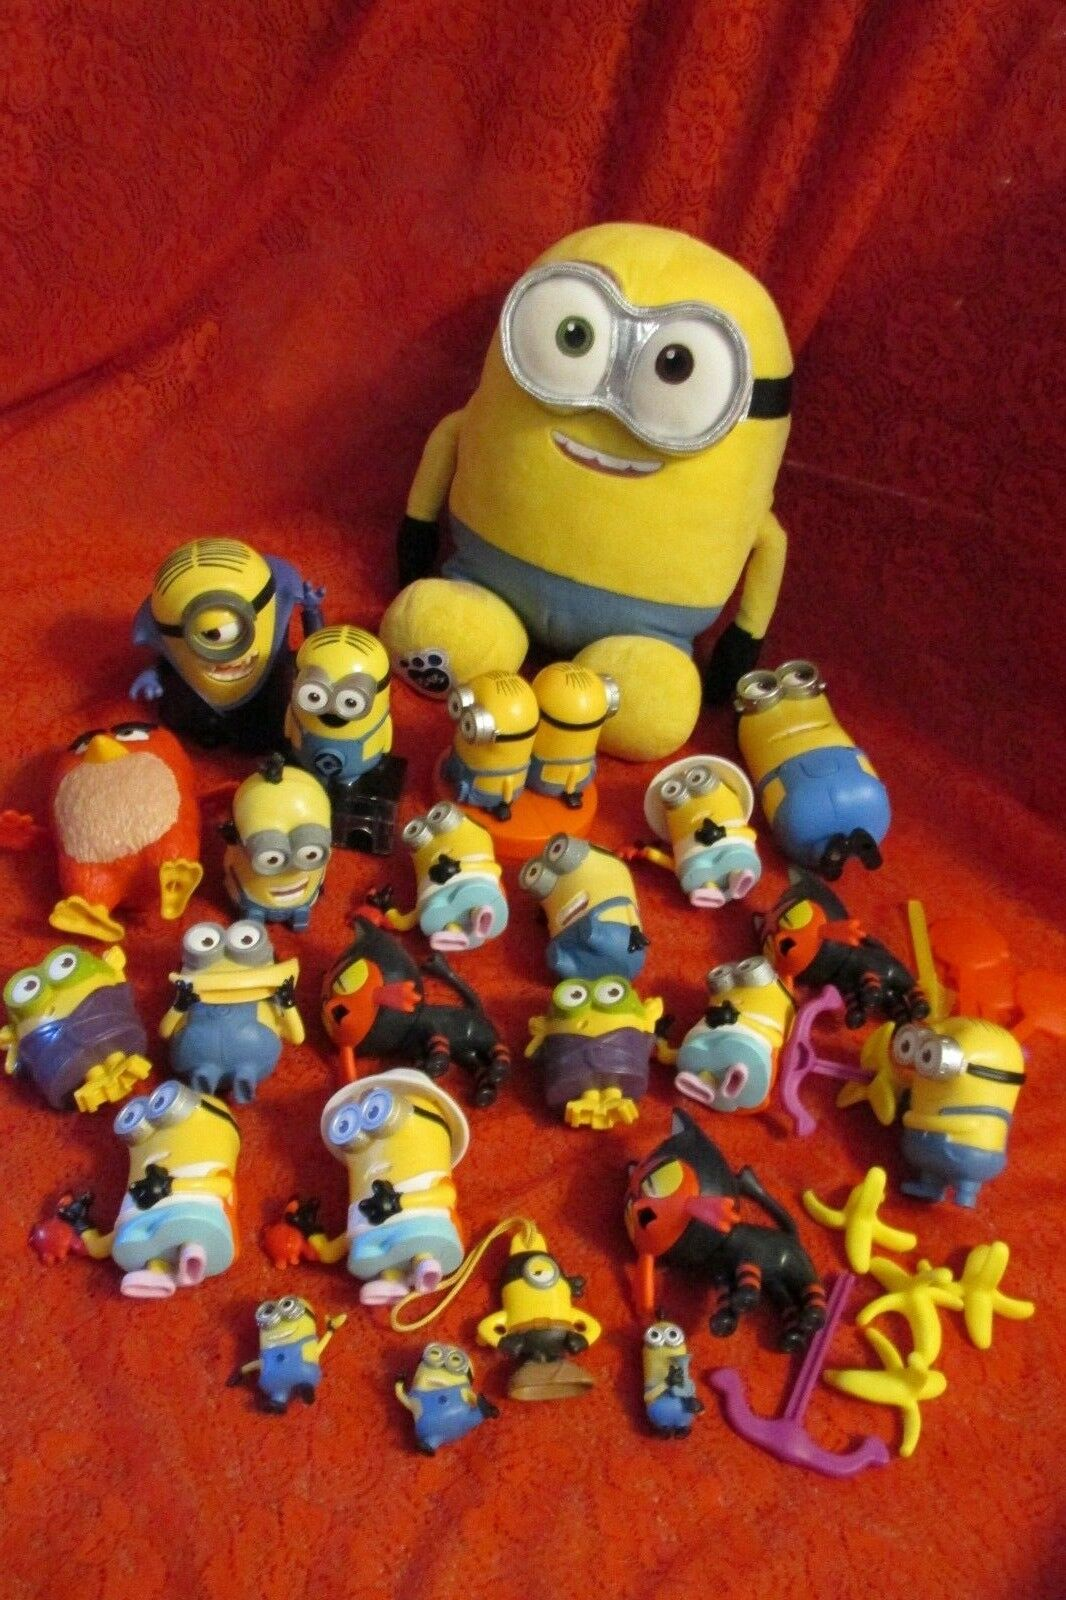 Despicable Me Minions Pokemon Toys Huge Lot of Mac D and a Build a Bear Minion